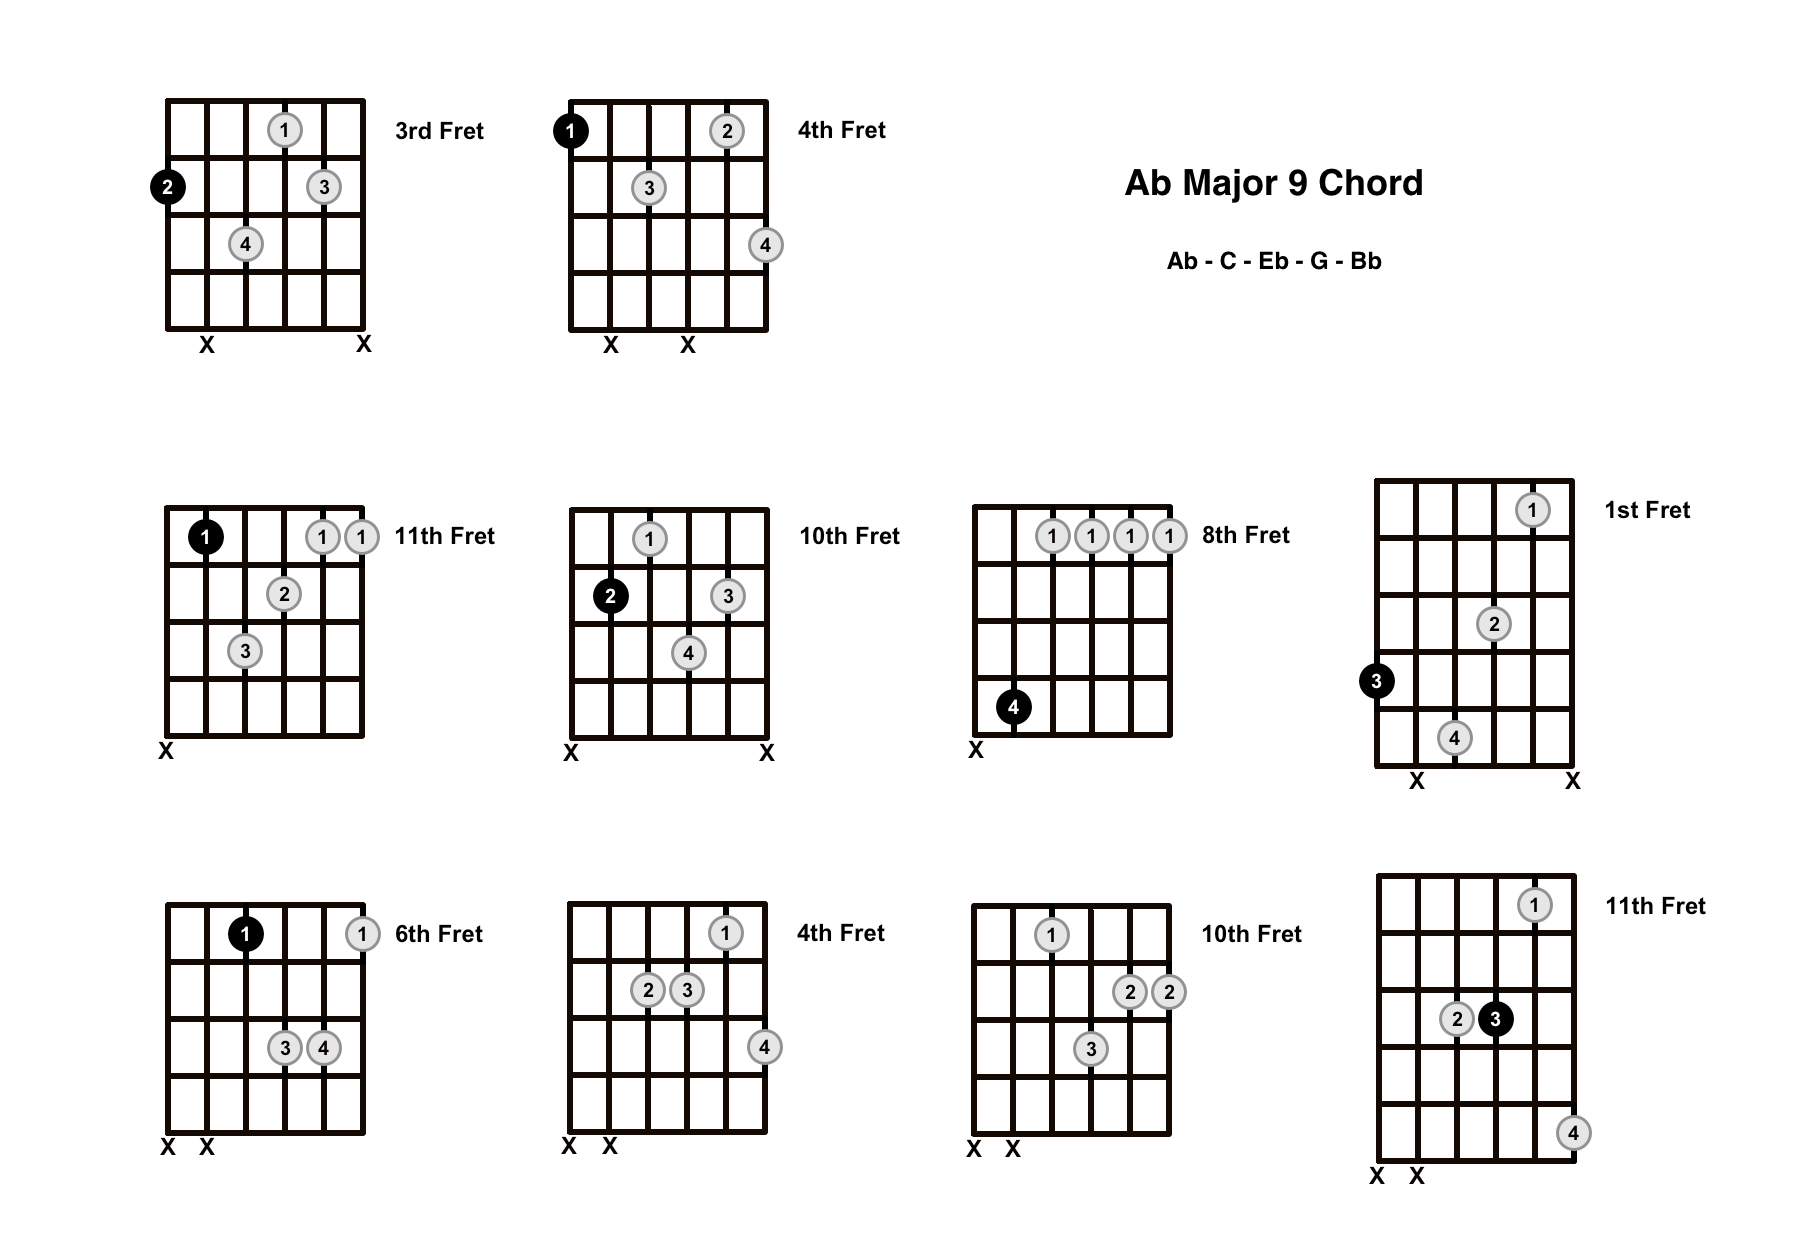 A Flat Major 9 Chord On The Guitar (Ab Maj 9) – Diagrams, Finger Positions and Theory